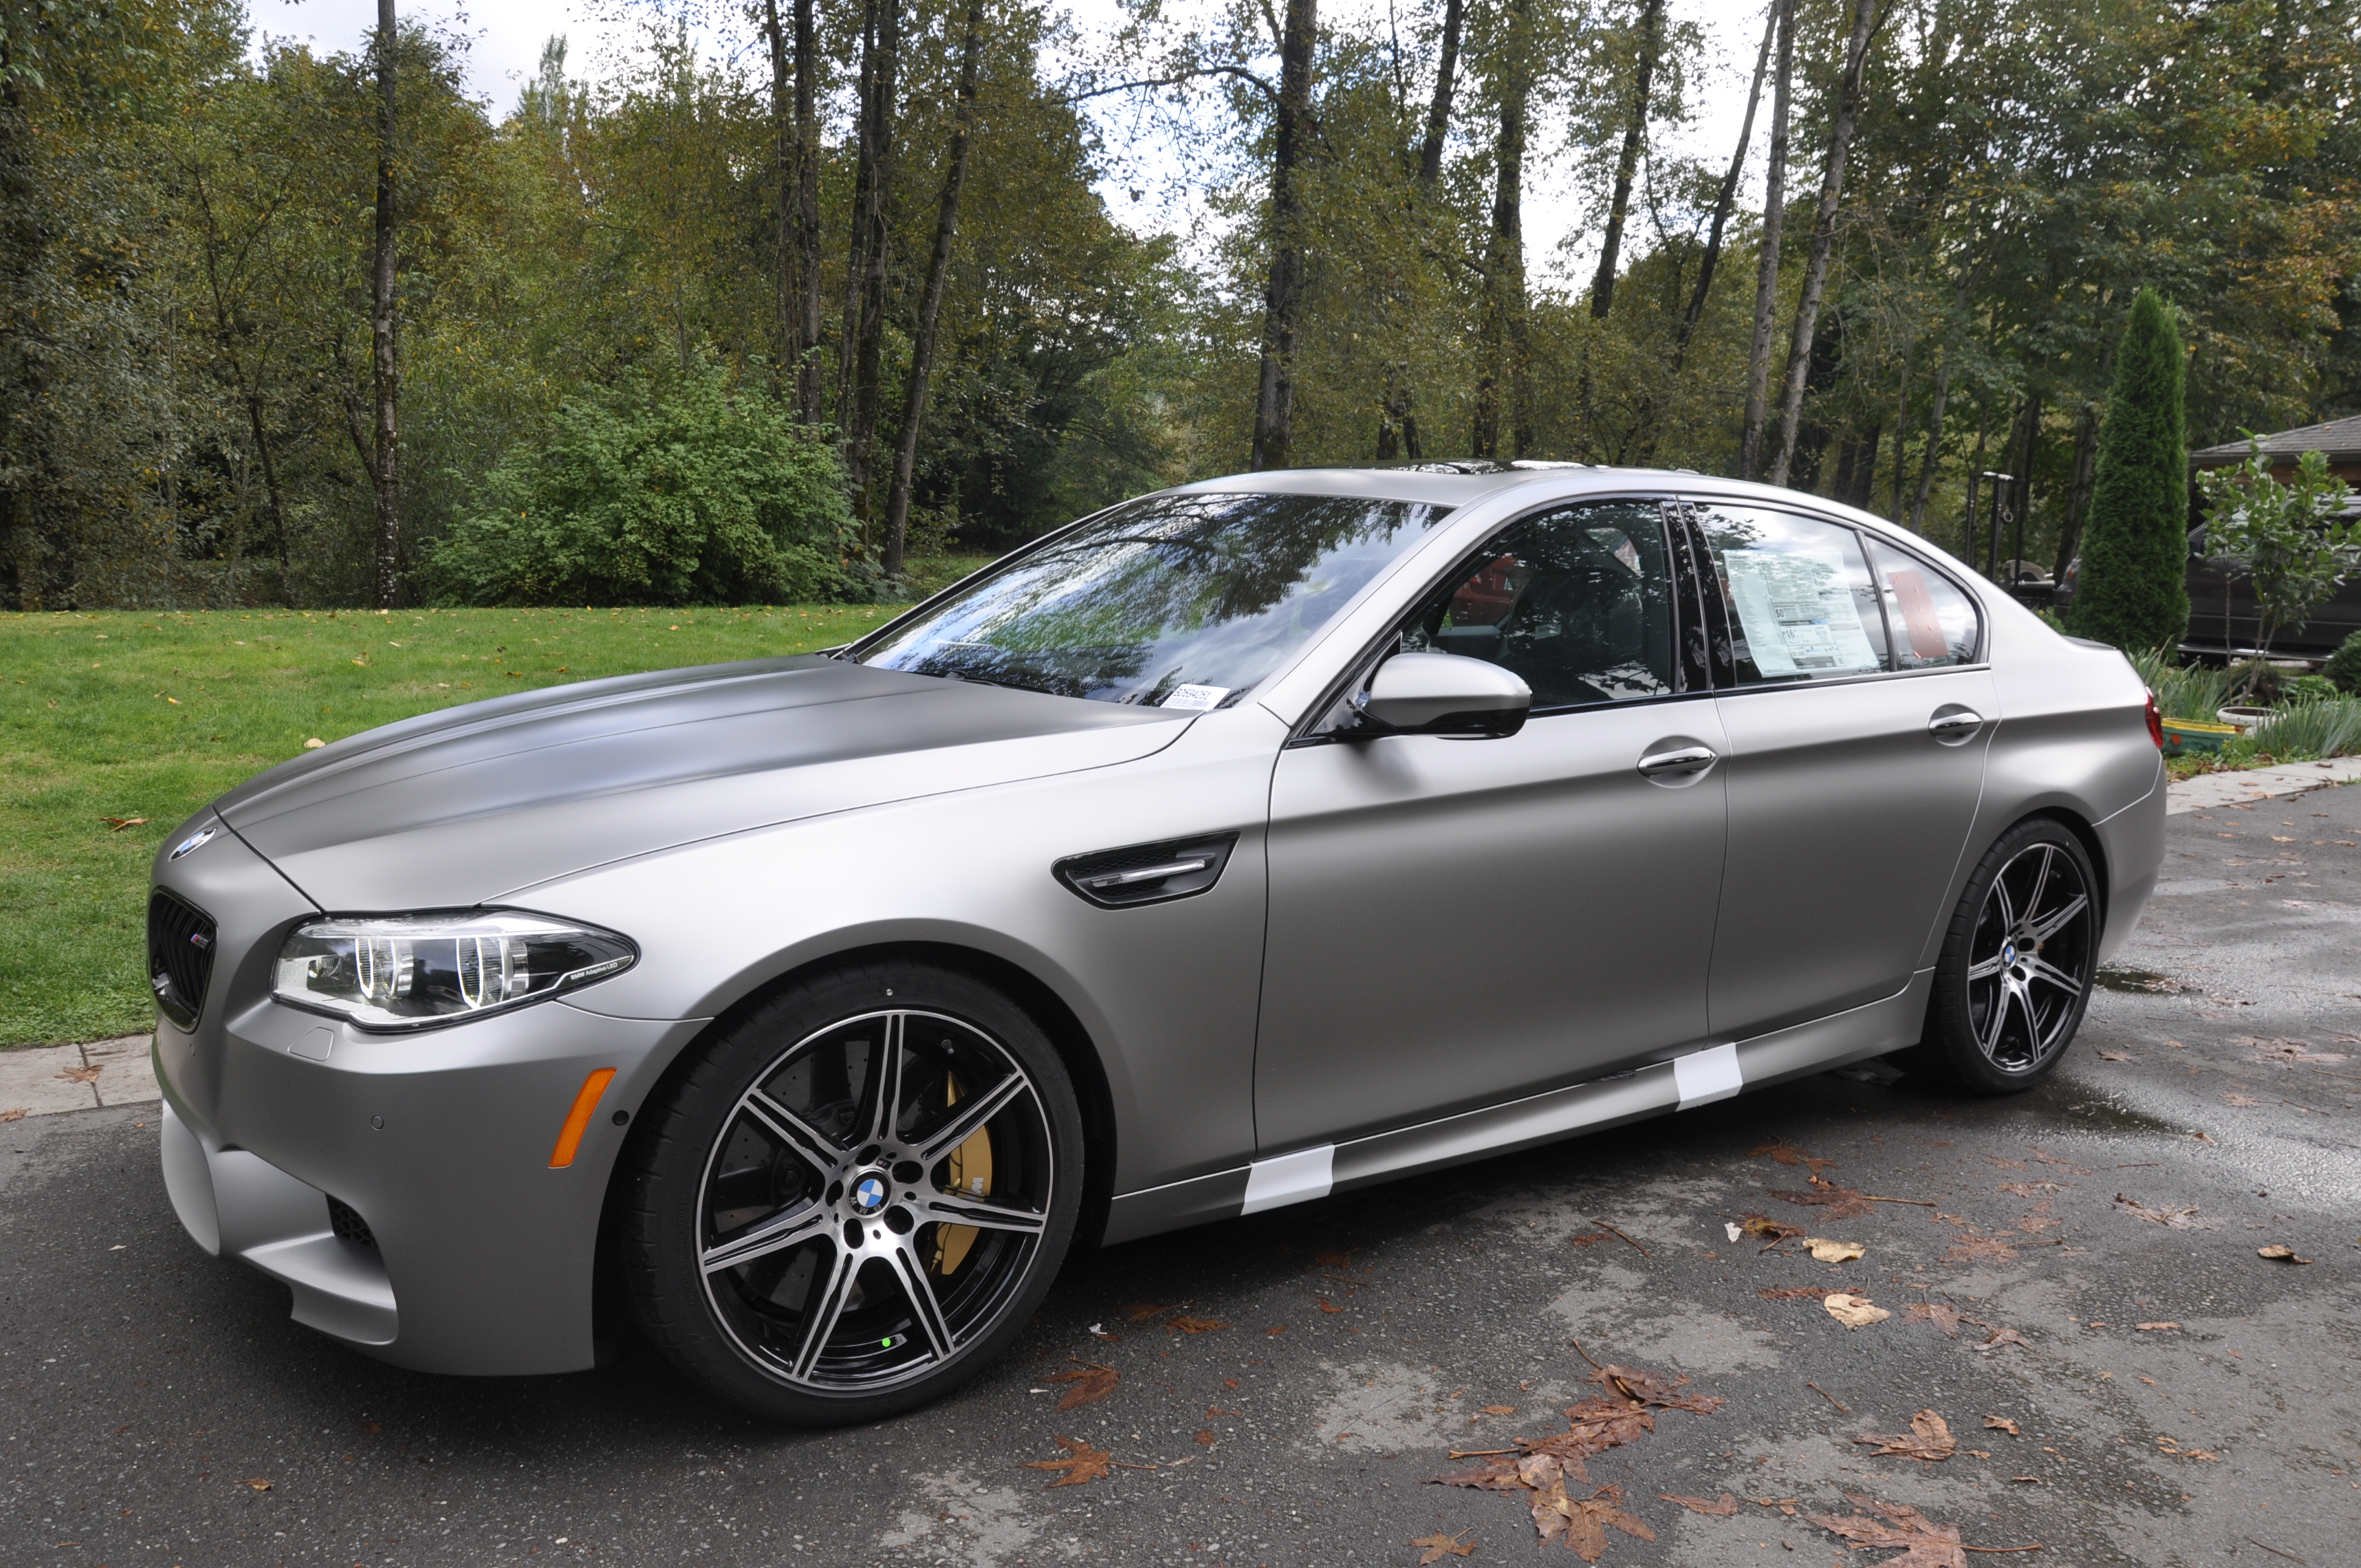 Bmw M5 F10 >> F10 For Sale Extremely rare 1 of 29 BMW M5 Jahre editions - BMW M5 Forum and M6 Forums